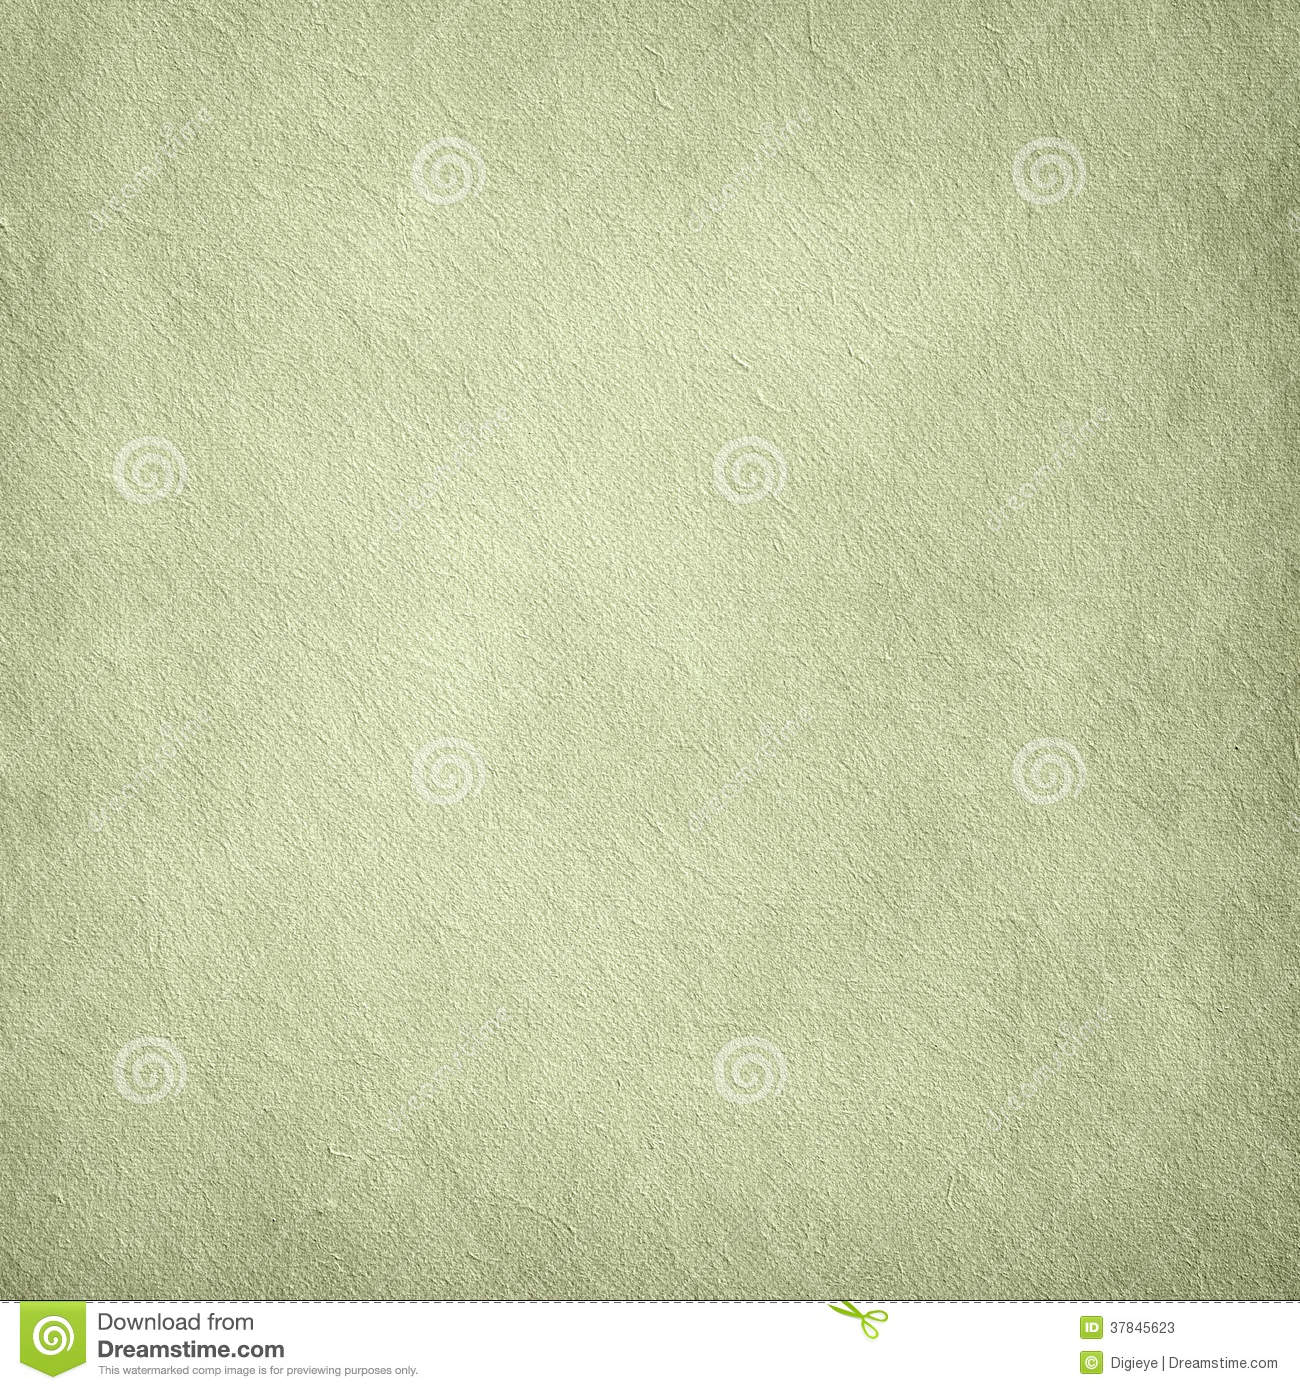 Background template - crumpled paper or plastered wall